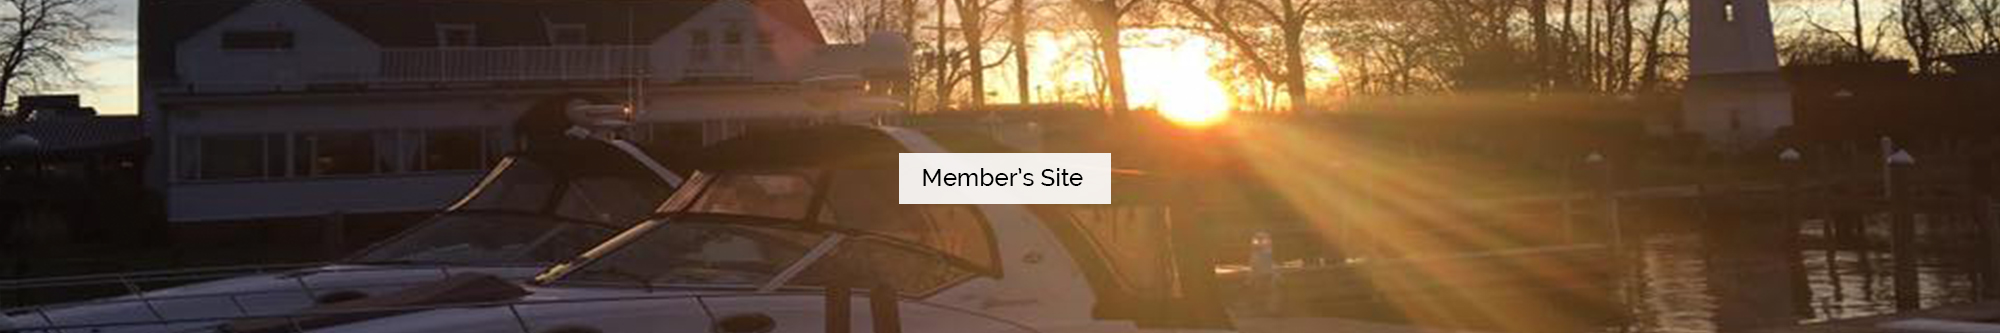 Buffalo Launch Club Members Site